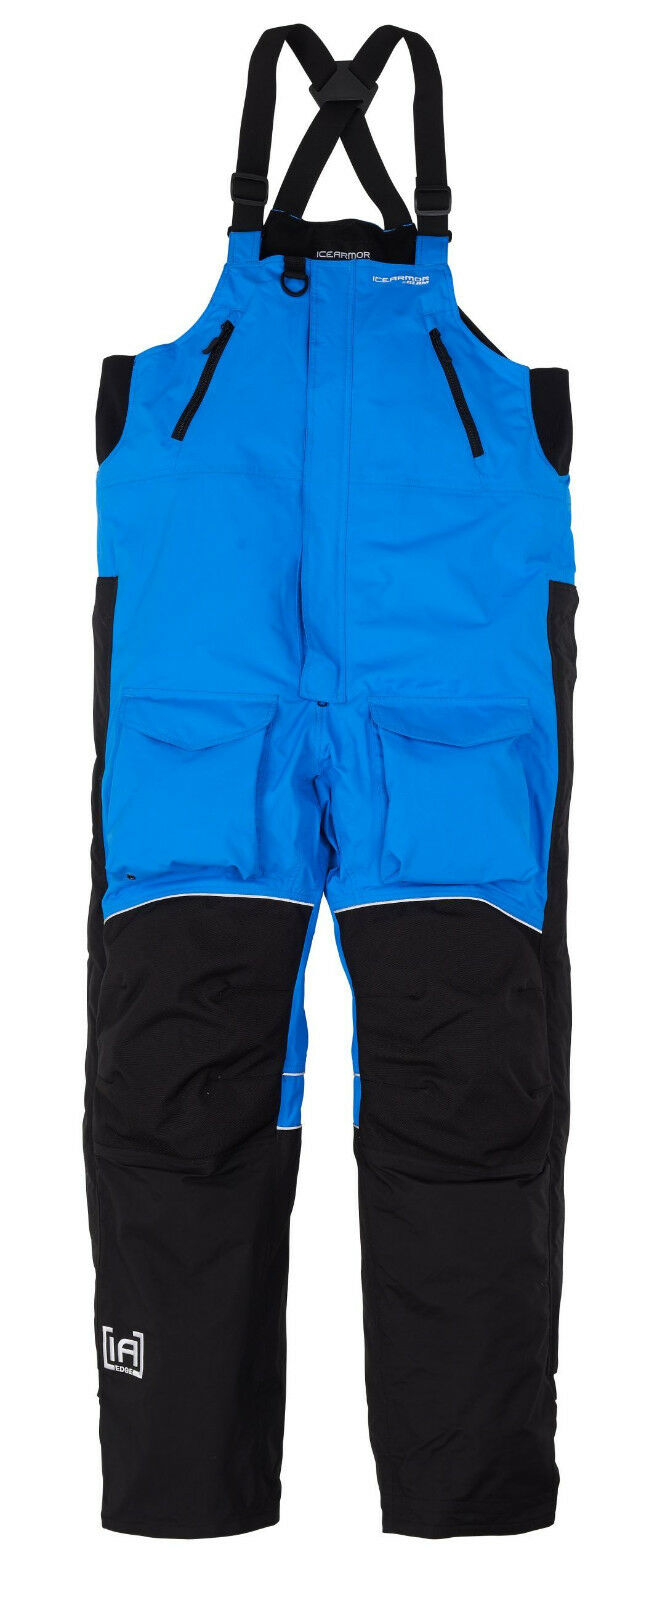 NEW CLAM ICE ARMOR EDGE COLD WEATHER BIBS blueE 3X 10298